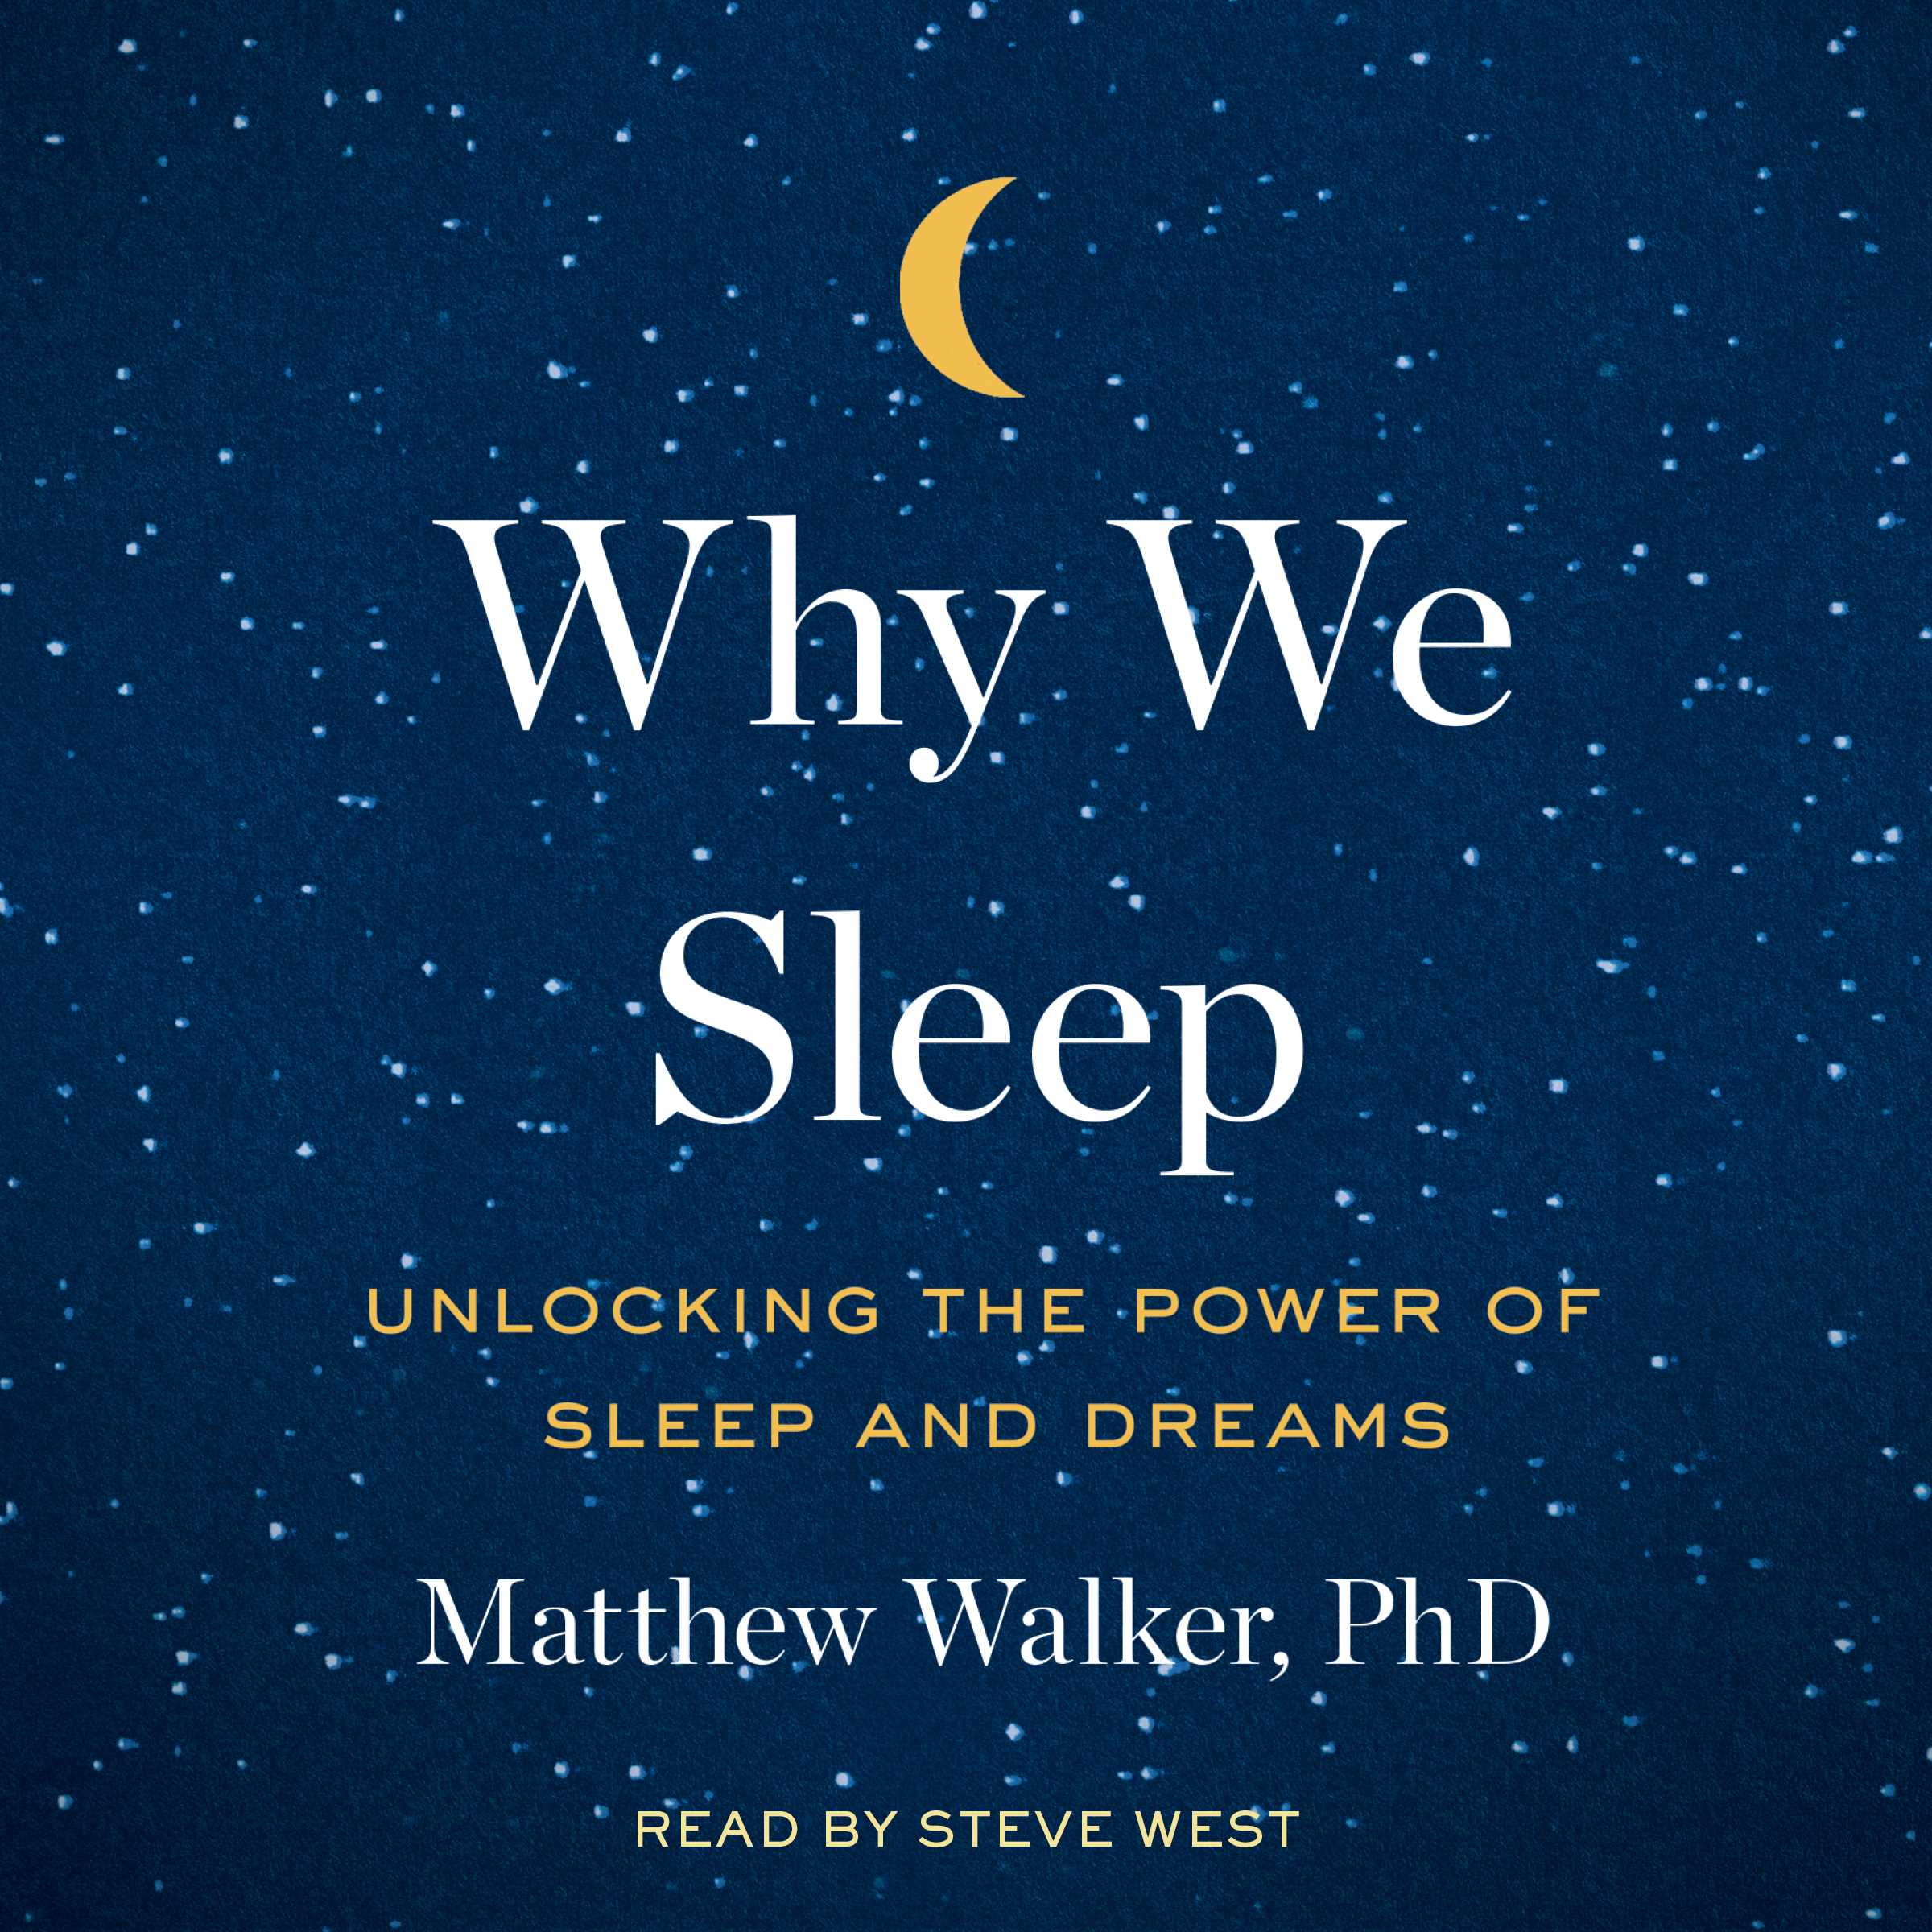 Why we sleep 9781508240013 hr